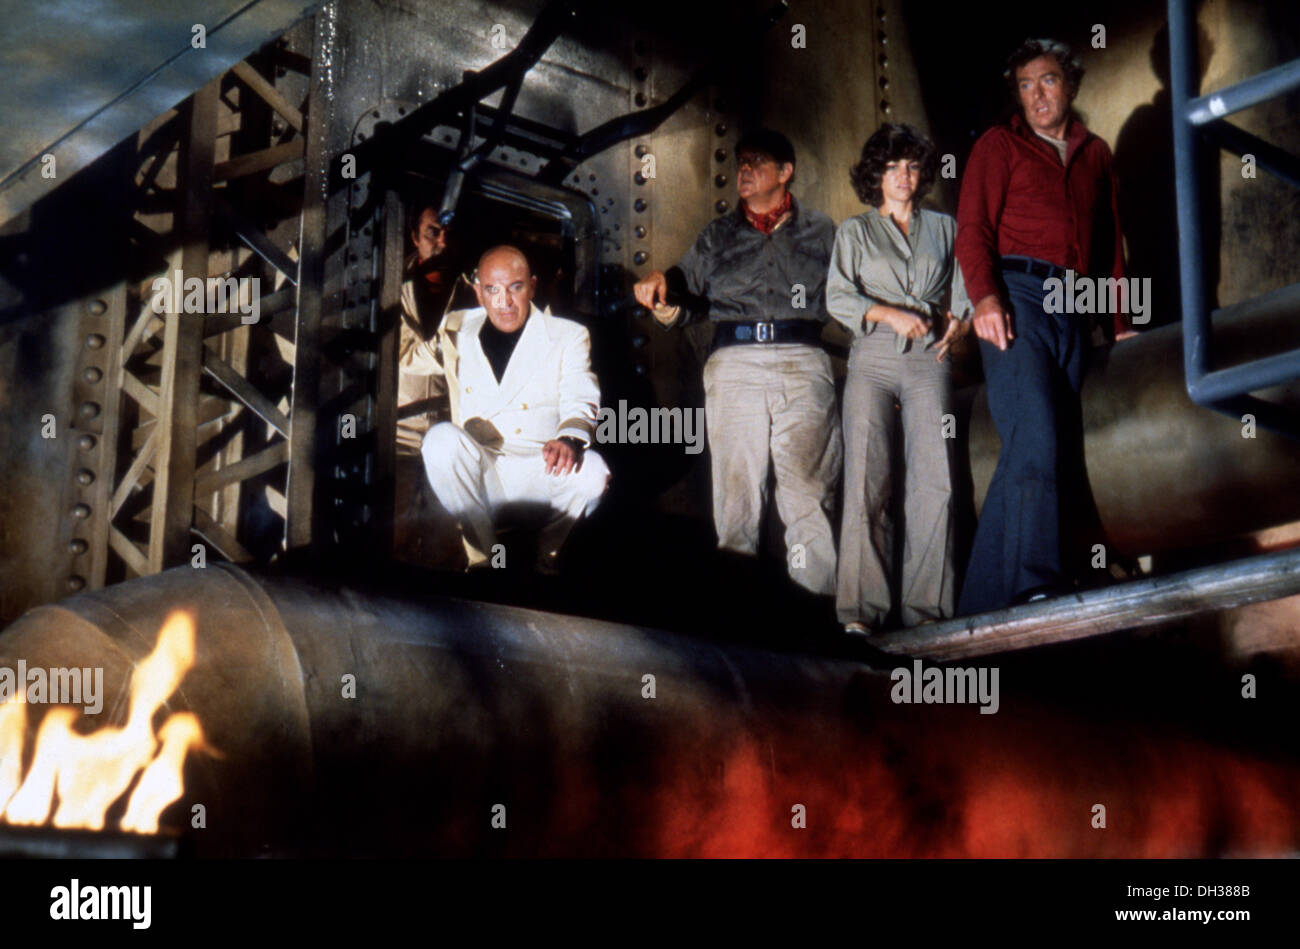 BEYOND THE POSEIDON ADVENTURE 1979) TELLY SAVALAS, KARL MALDON, SALLY FIELD, MICHAEL CAINE, IRWIN ALLEN DIR) BYPD 021 - Stock Image